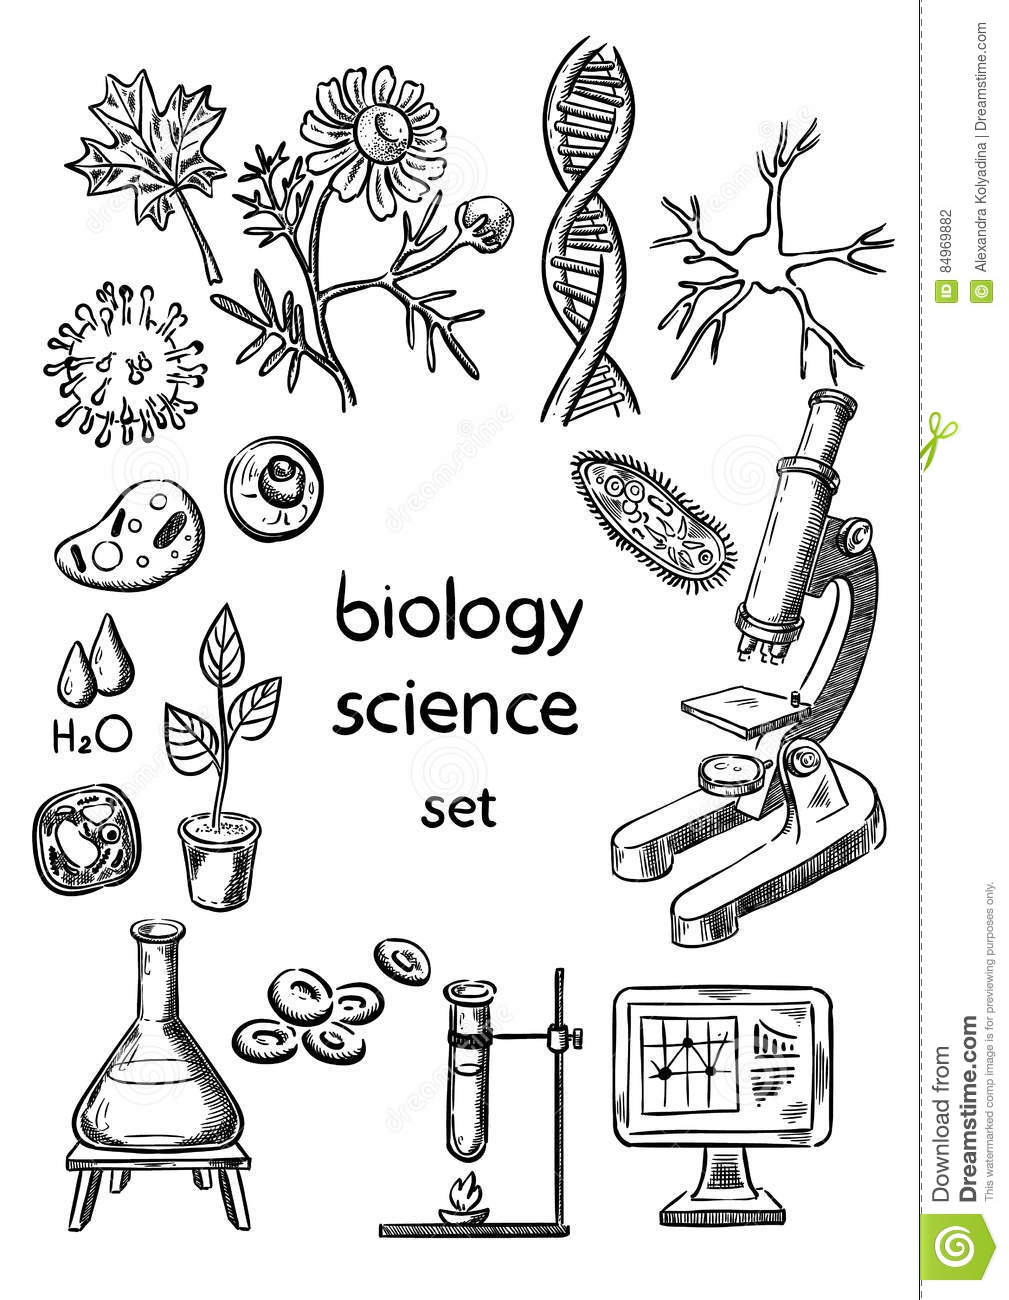 Biological science set stock illustration. Illustration of